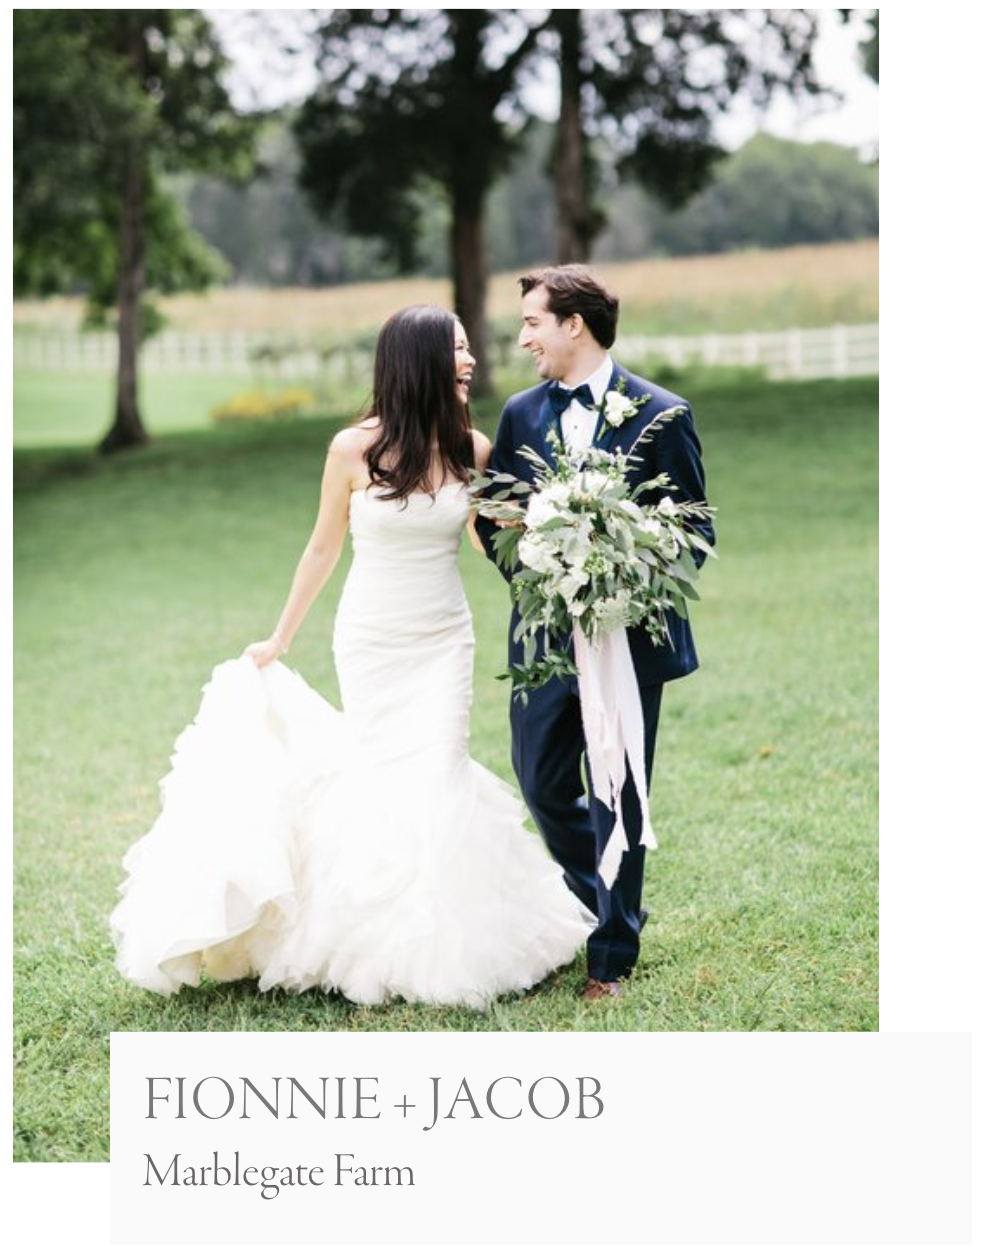 Fionnie_Jacob_Marblegate_Farm_Wedding_Knoxville_Abigail_Malone_Photography-387.jpg